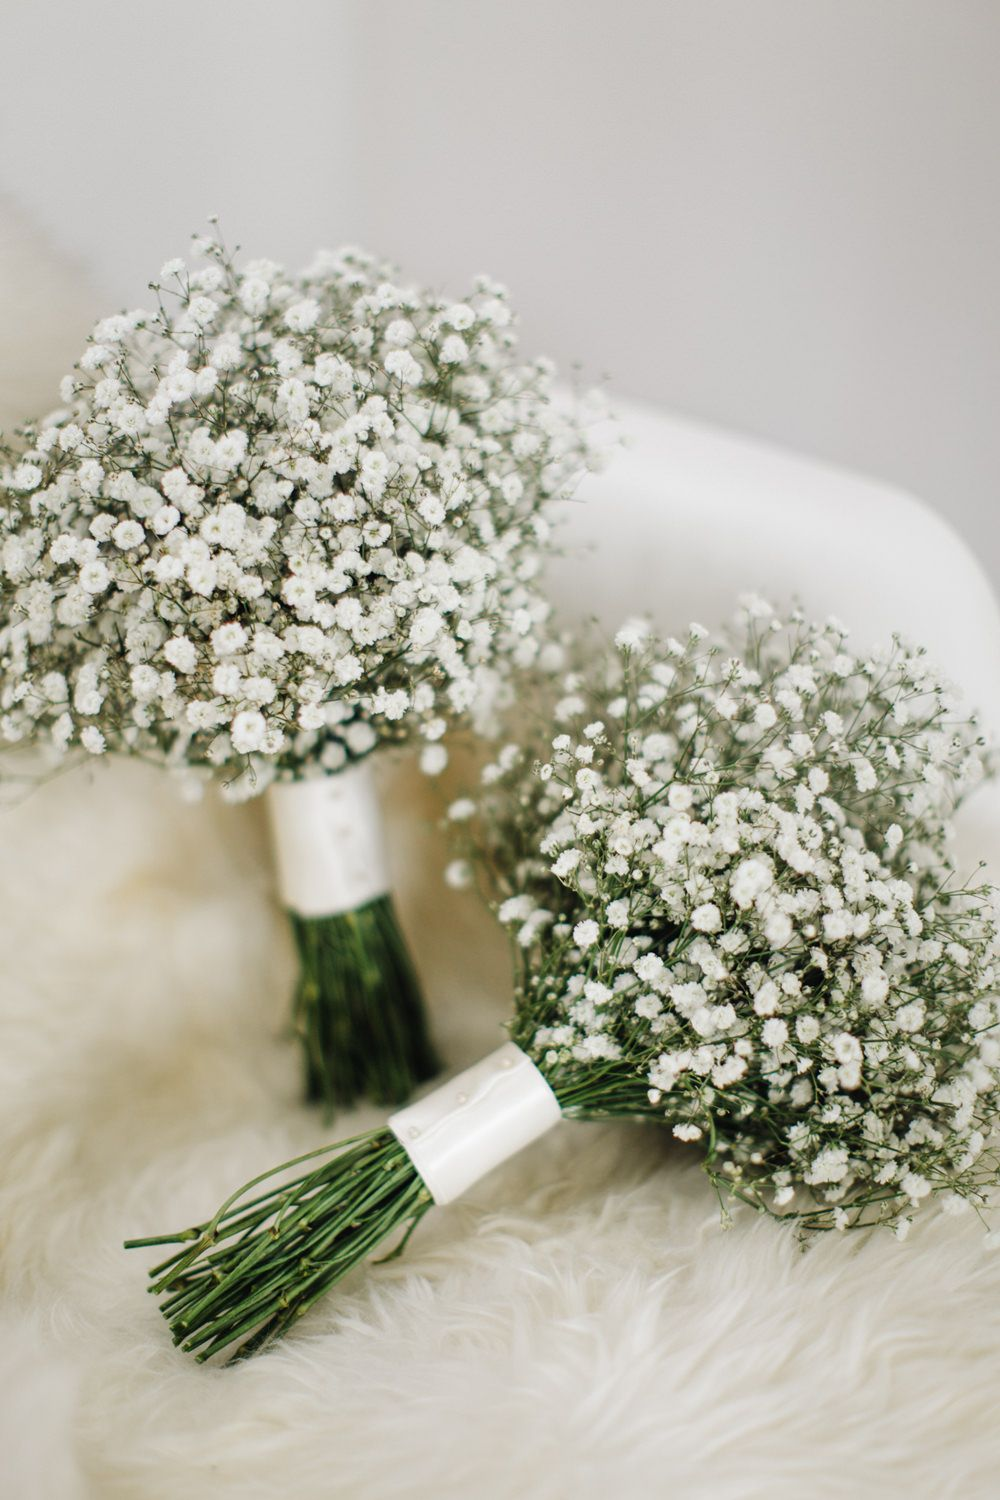 This Is How a Parisian Plans a Wedding | Gypsophila bouquet ...